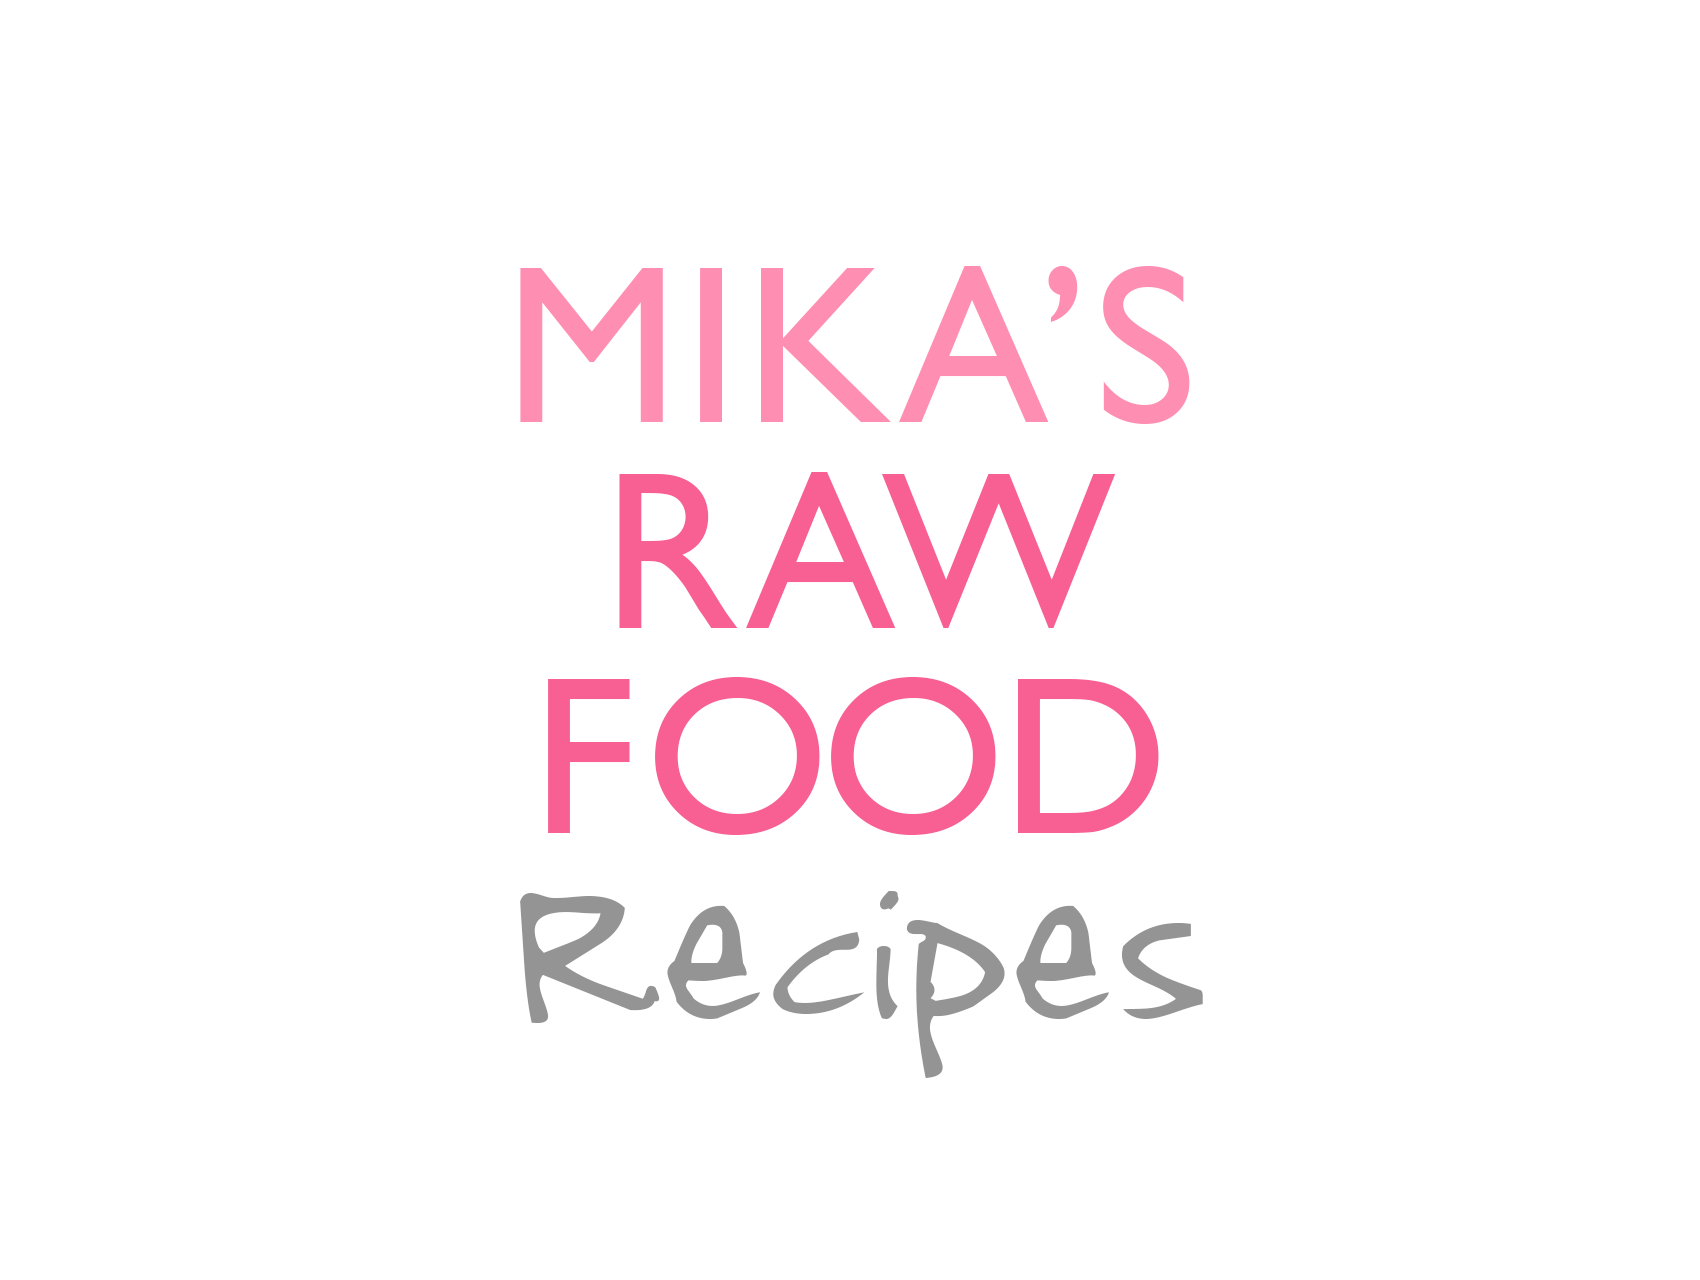 Mika's raw food Recipe Logo Design